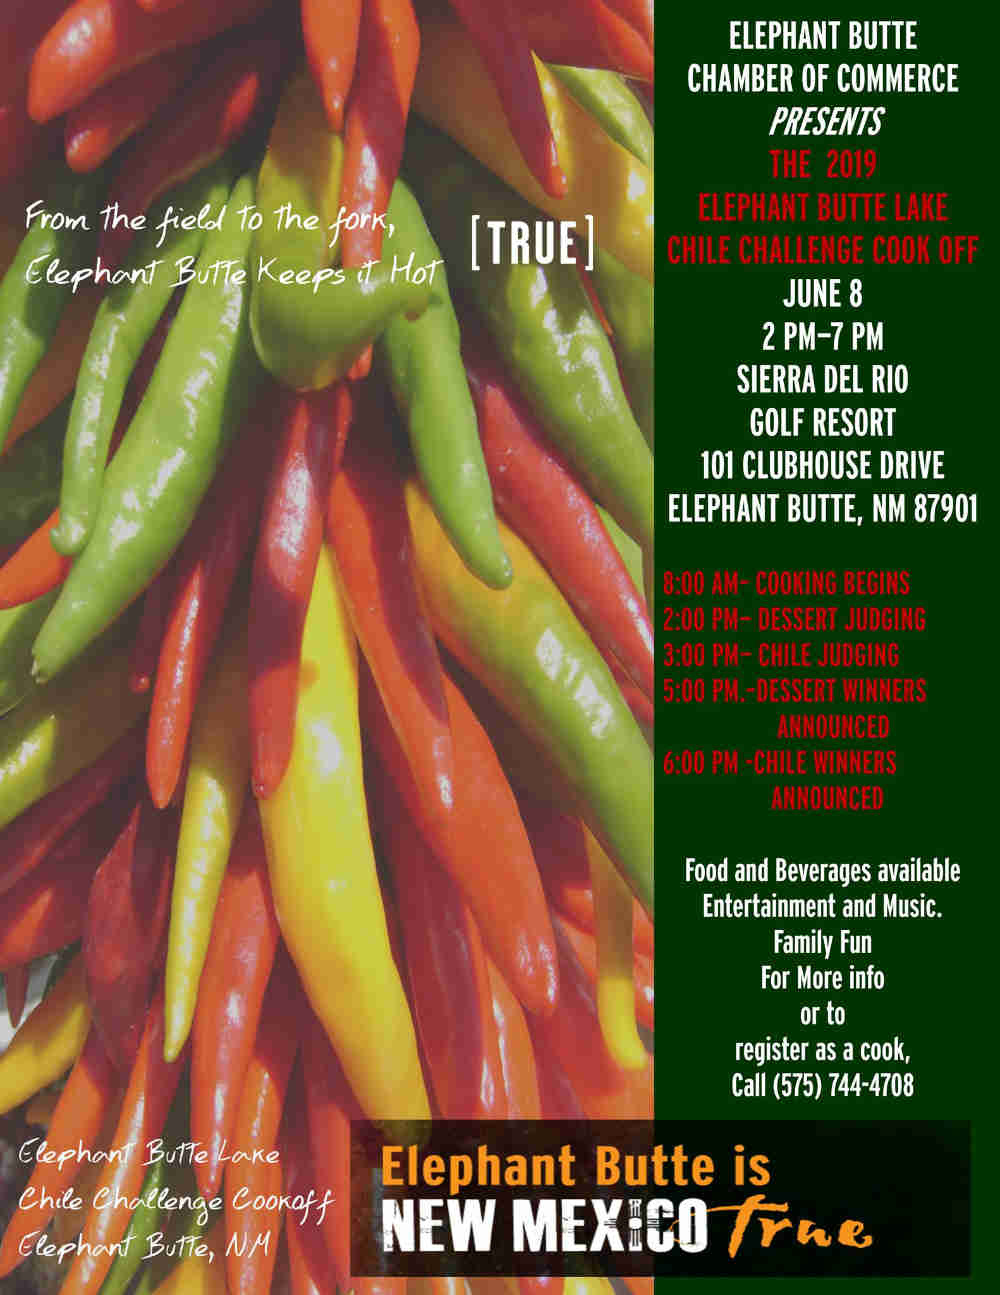 2019 Elephant Butte Chili Challenge Cook-off at Sierra del Rio